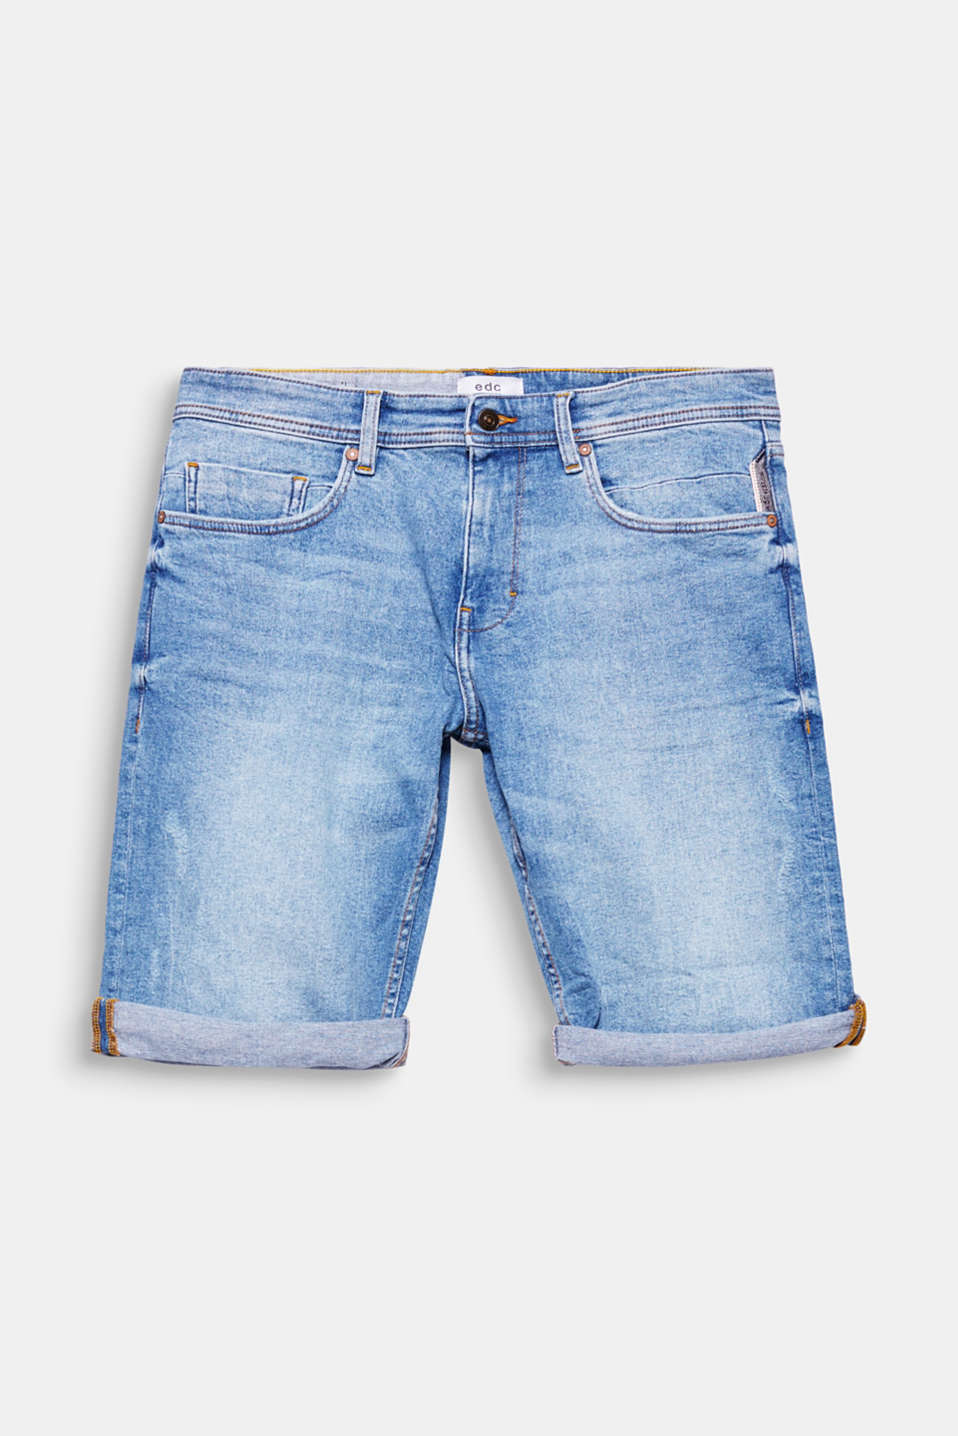 Bermuda shorts composed of denim – your fashion essential for this summer!